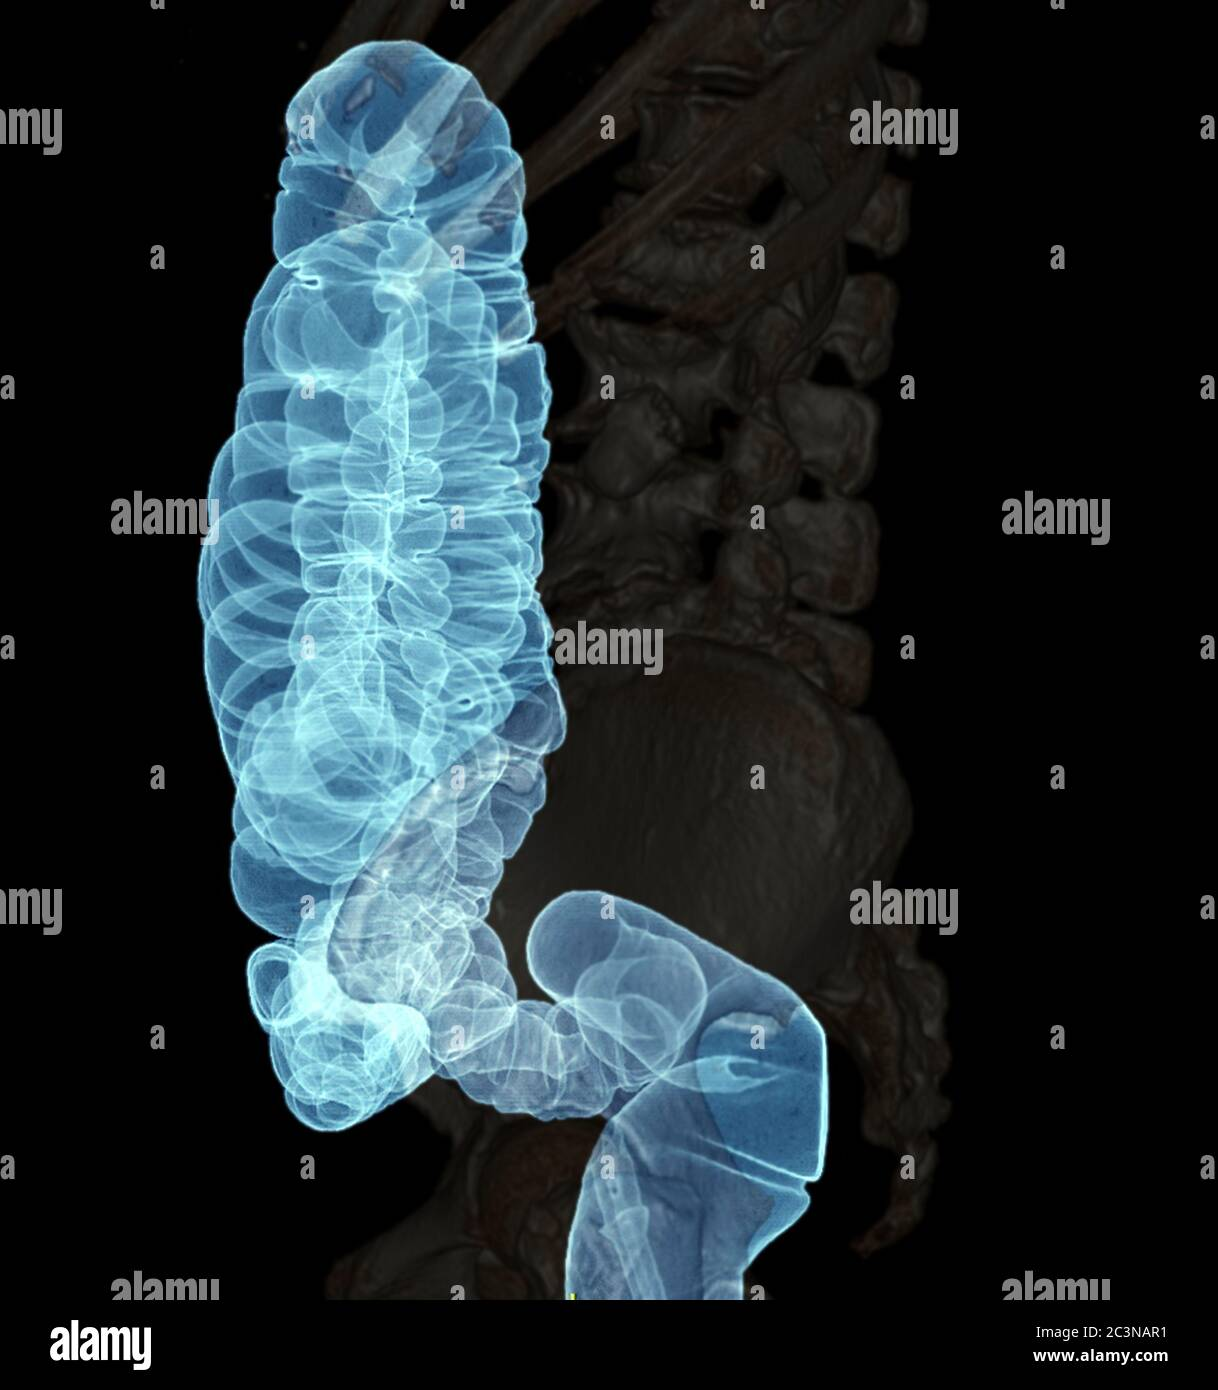 Ct Colonography Or Ct Scan Of Colon 3d Rendering Image Lateral View Showing Colon For Screening Colorectal Cancer Check Up Screening Colon Cancer Stock Photo Alamy